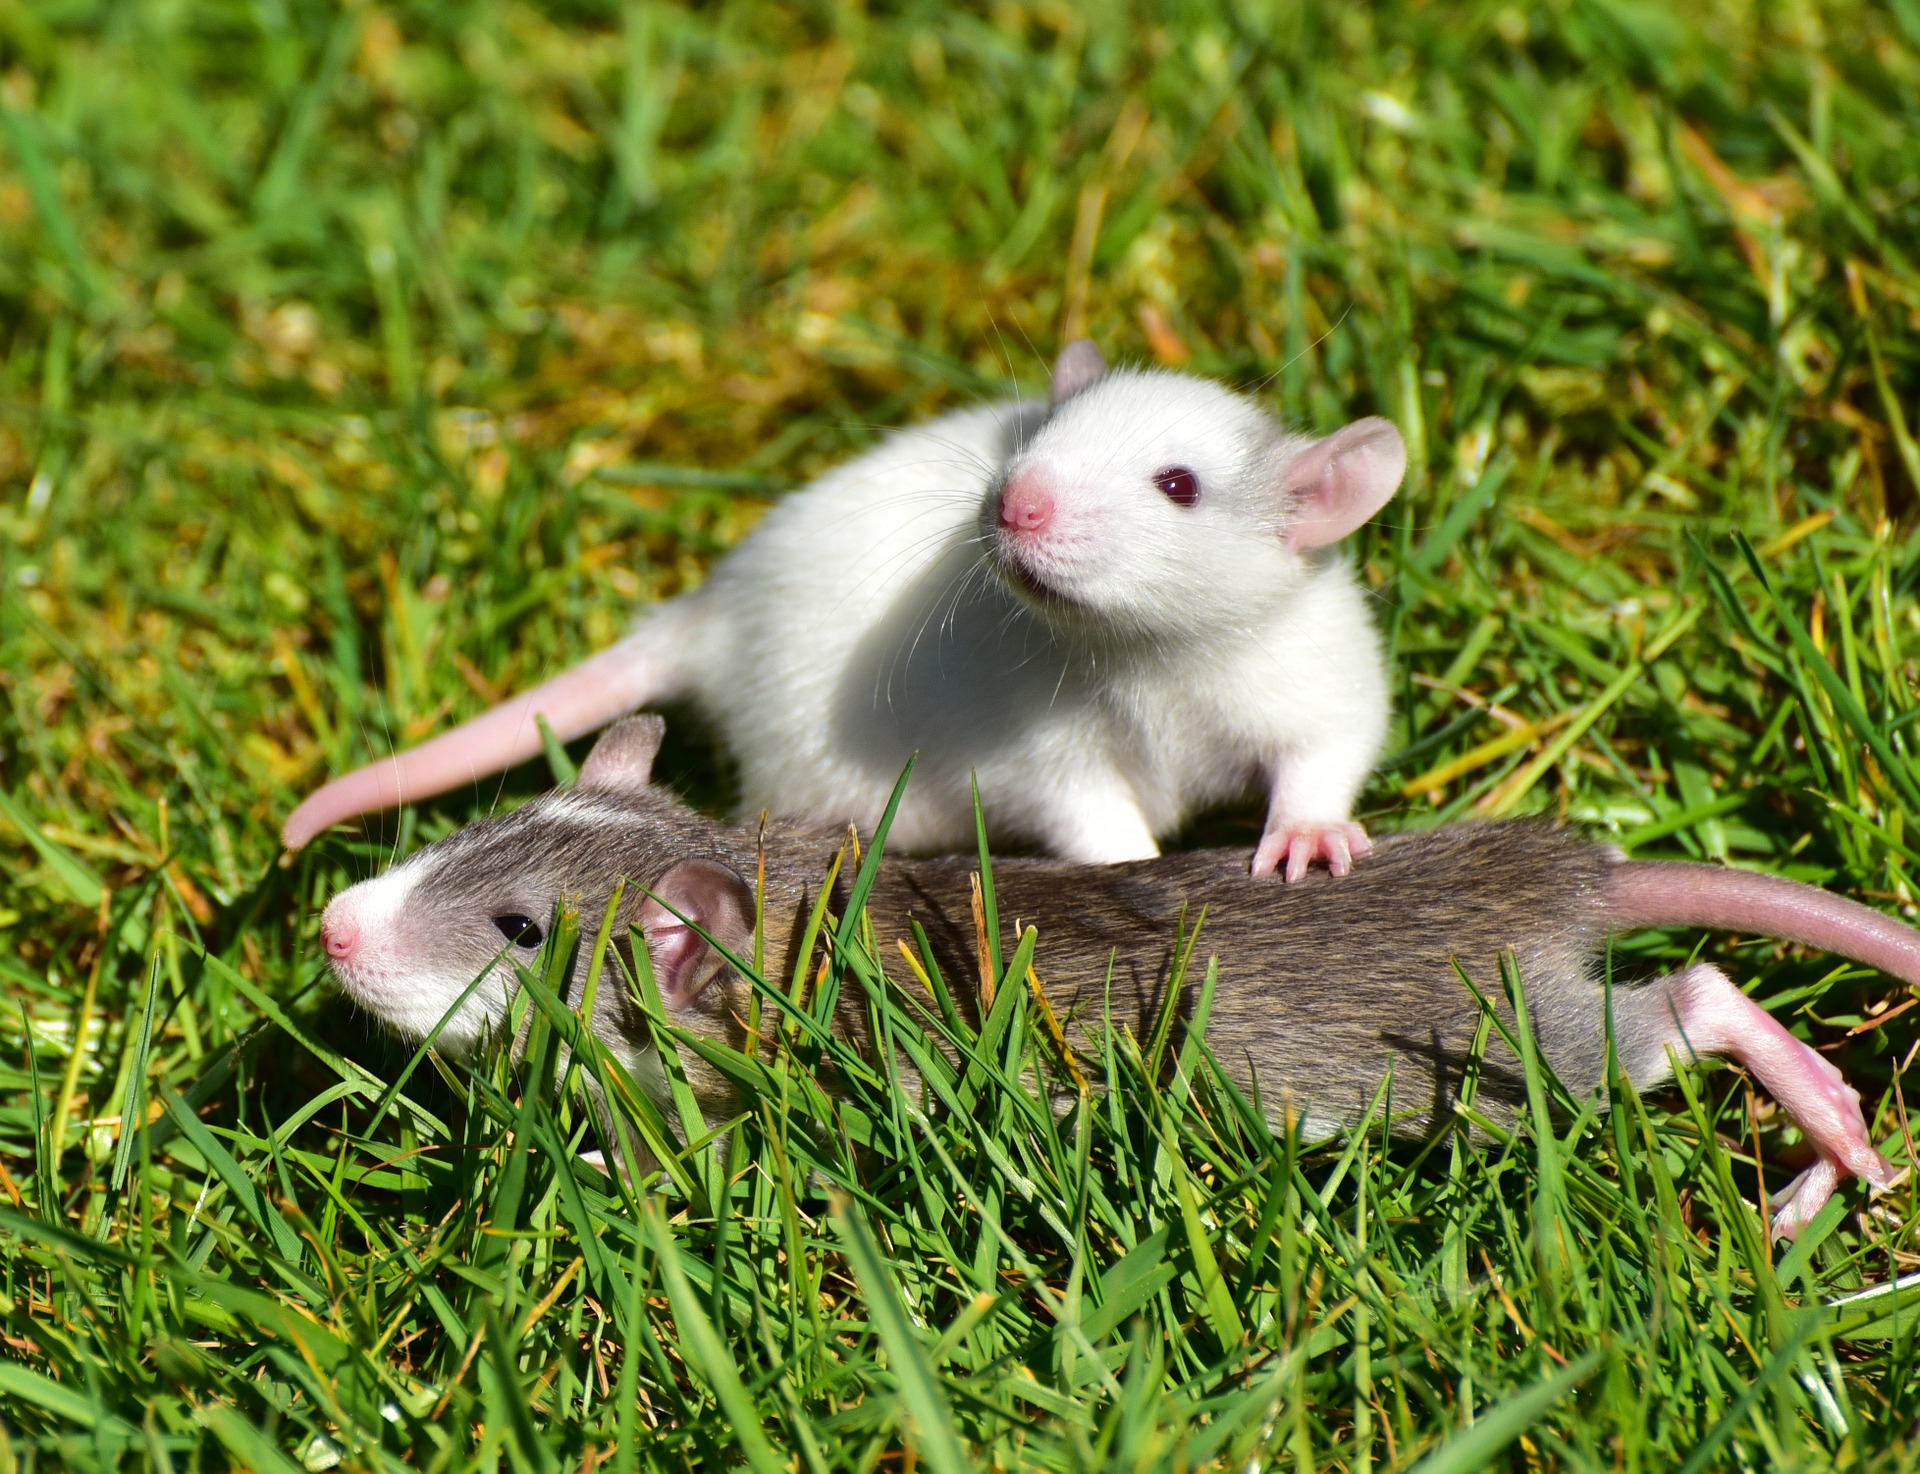 2 Baby Rats together on the grass - photo credit: Silvia Sipa  - Conscious Life Space